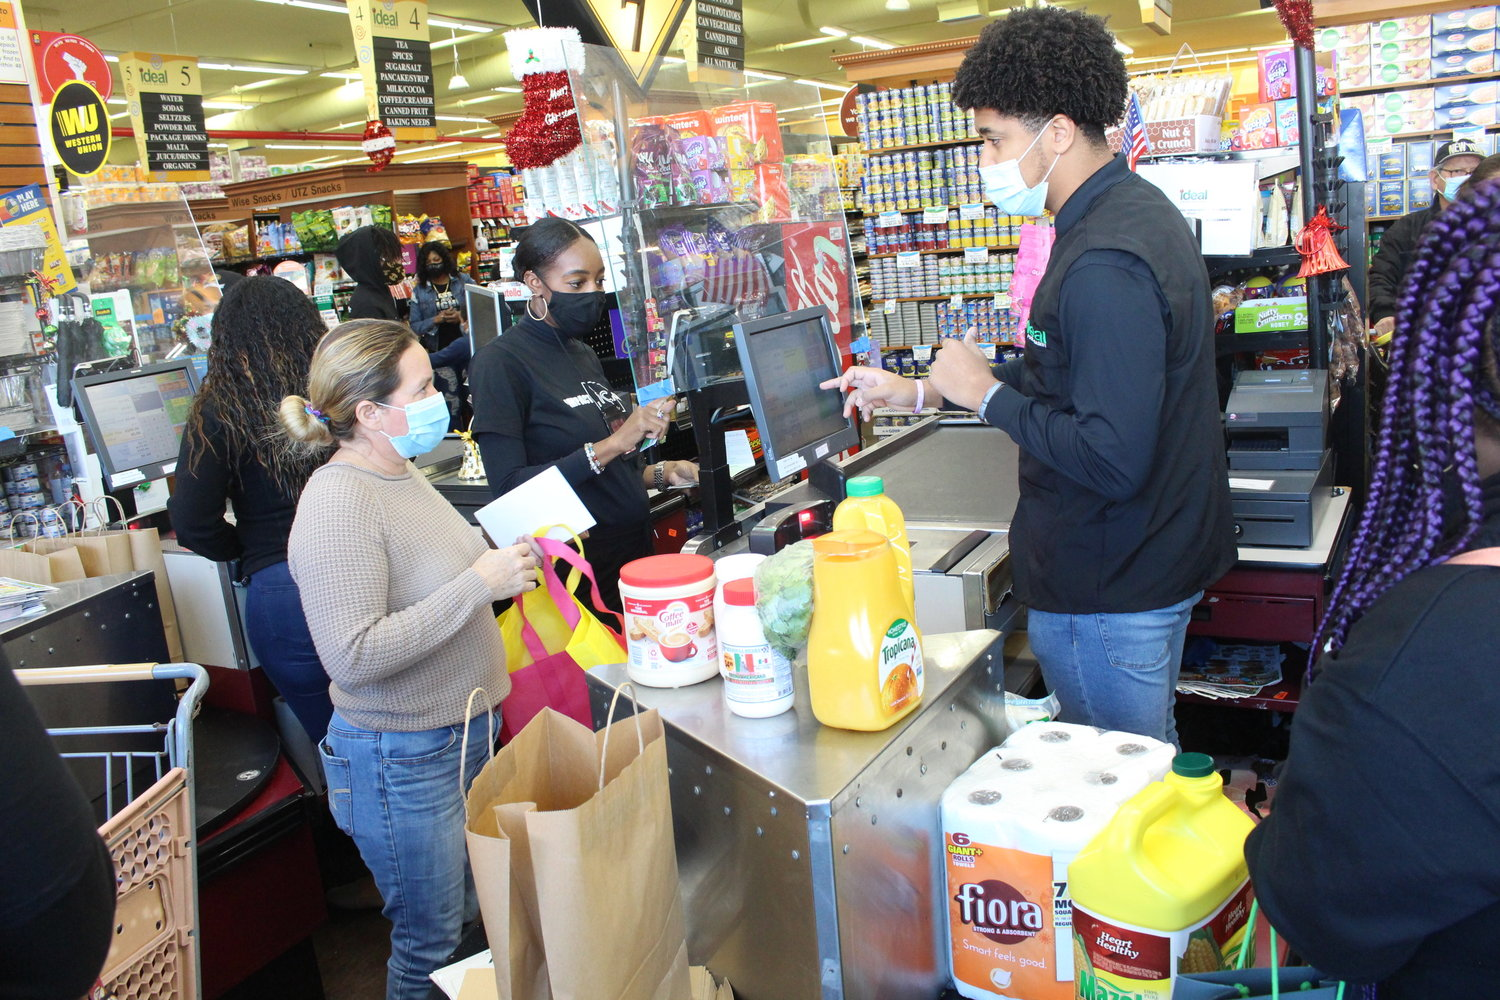 Members of Baldwin's Impact Church helped local families shop for groceries and covered their bills at Ideal Food Basket on Sunday.